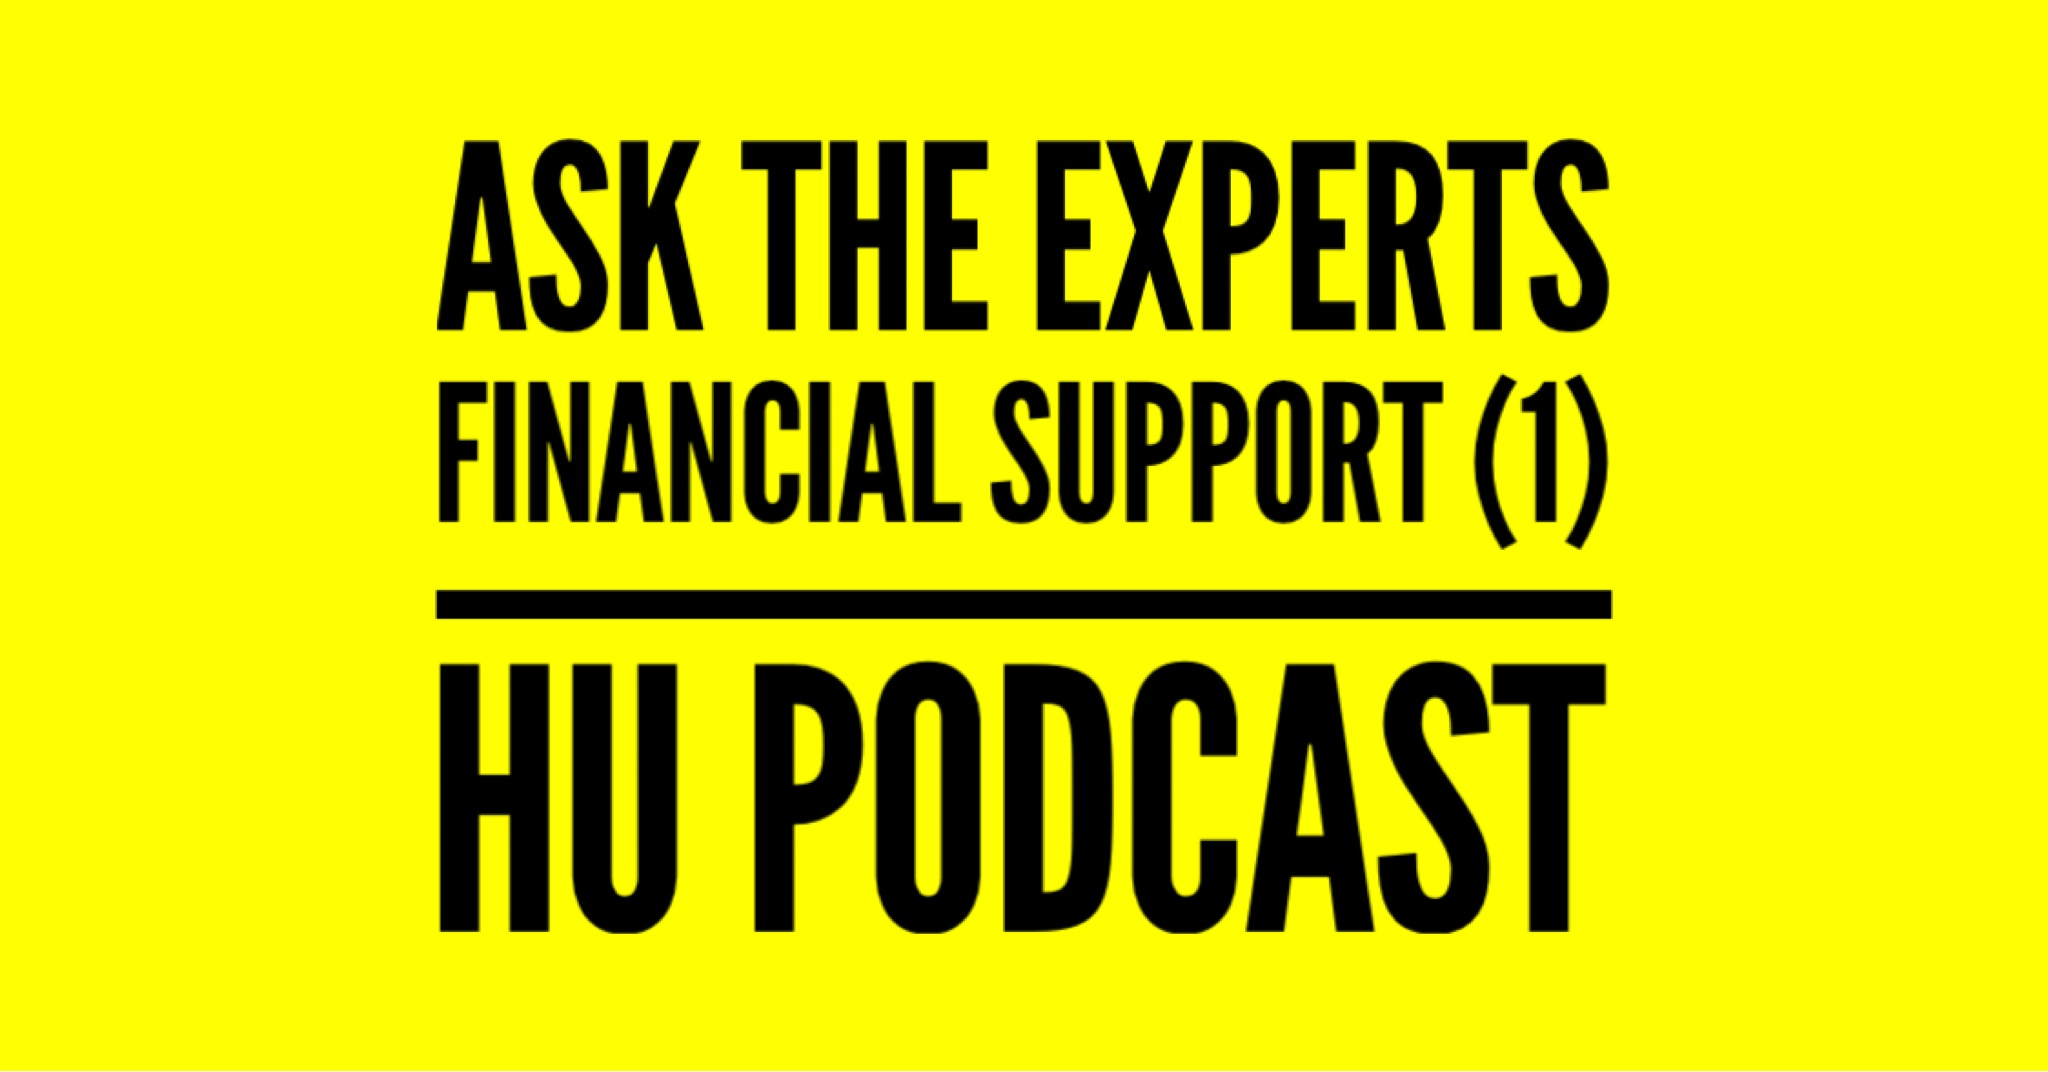 Ask The Experts Financial Support 1